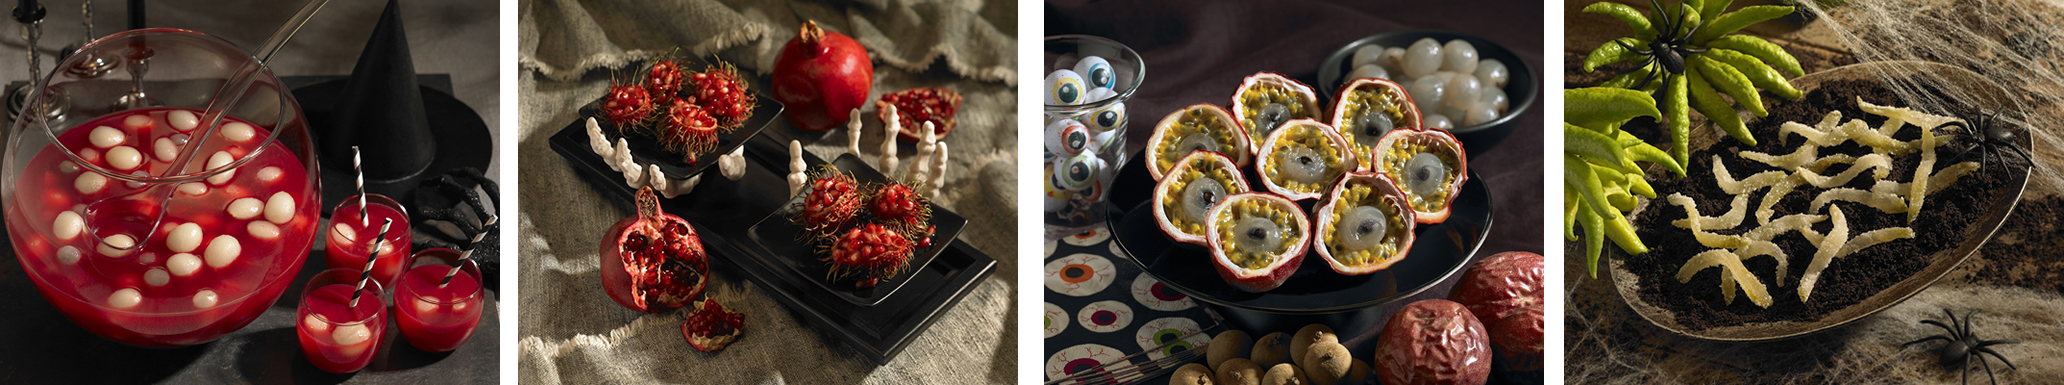 Freaky Fruits for Halloween Celebrations